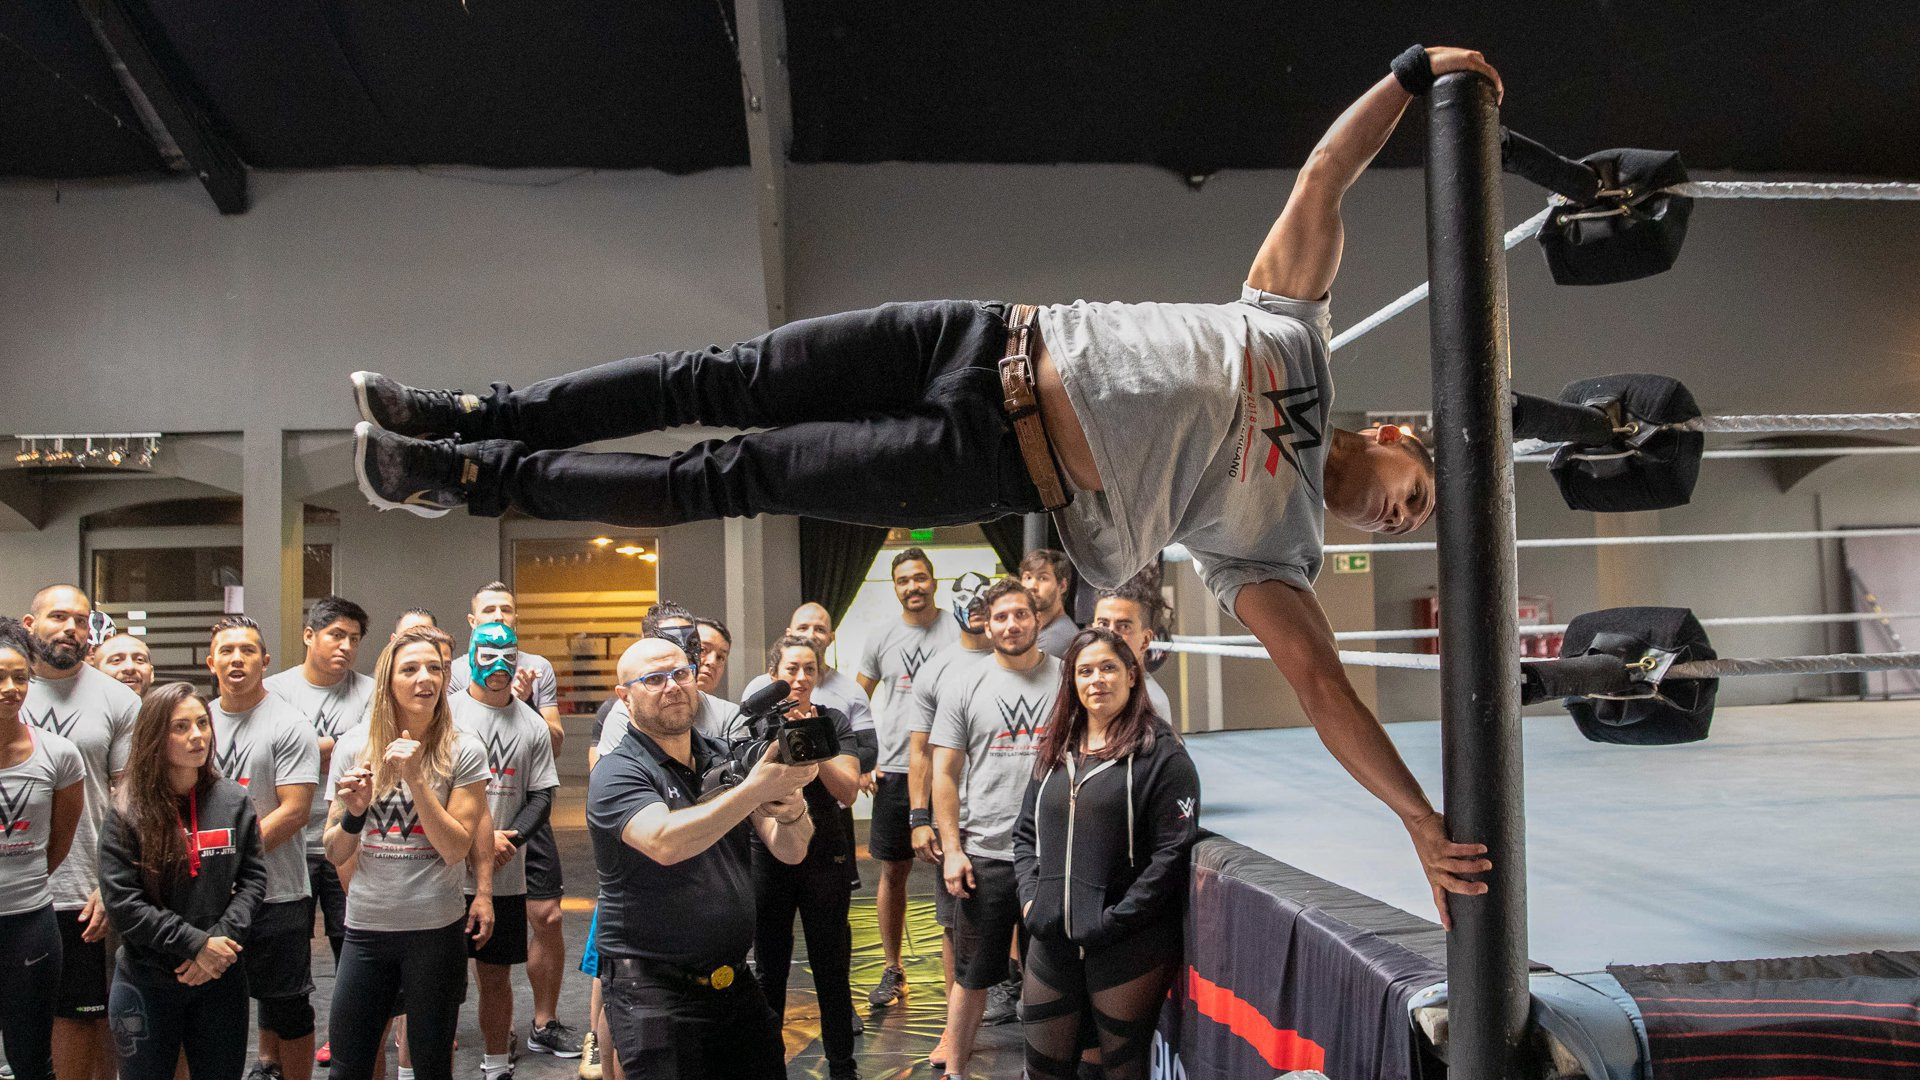 Chilean street-workout athlete Pedro Sanchez impresses the other prospects as he performs the human flag on the ring post.